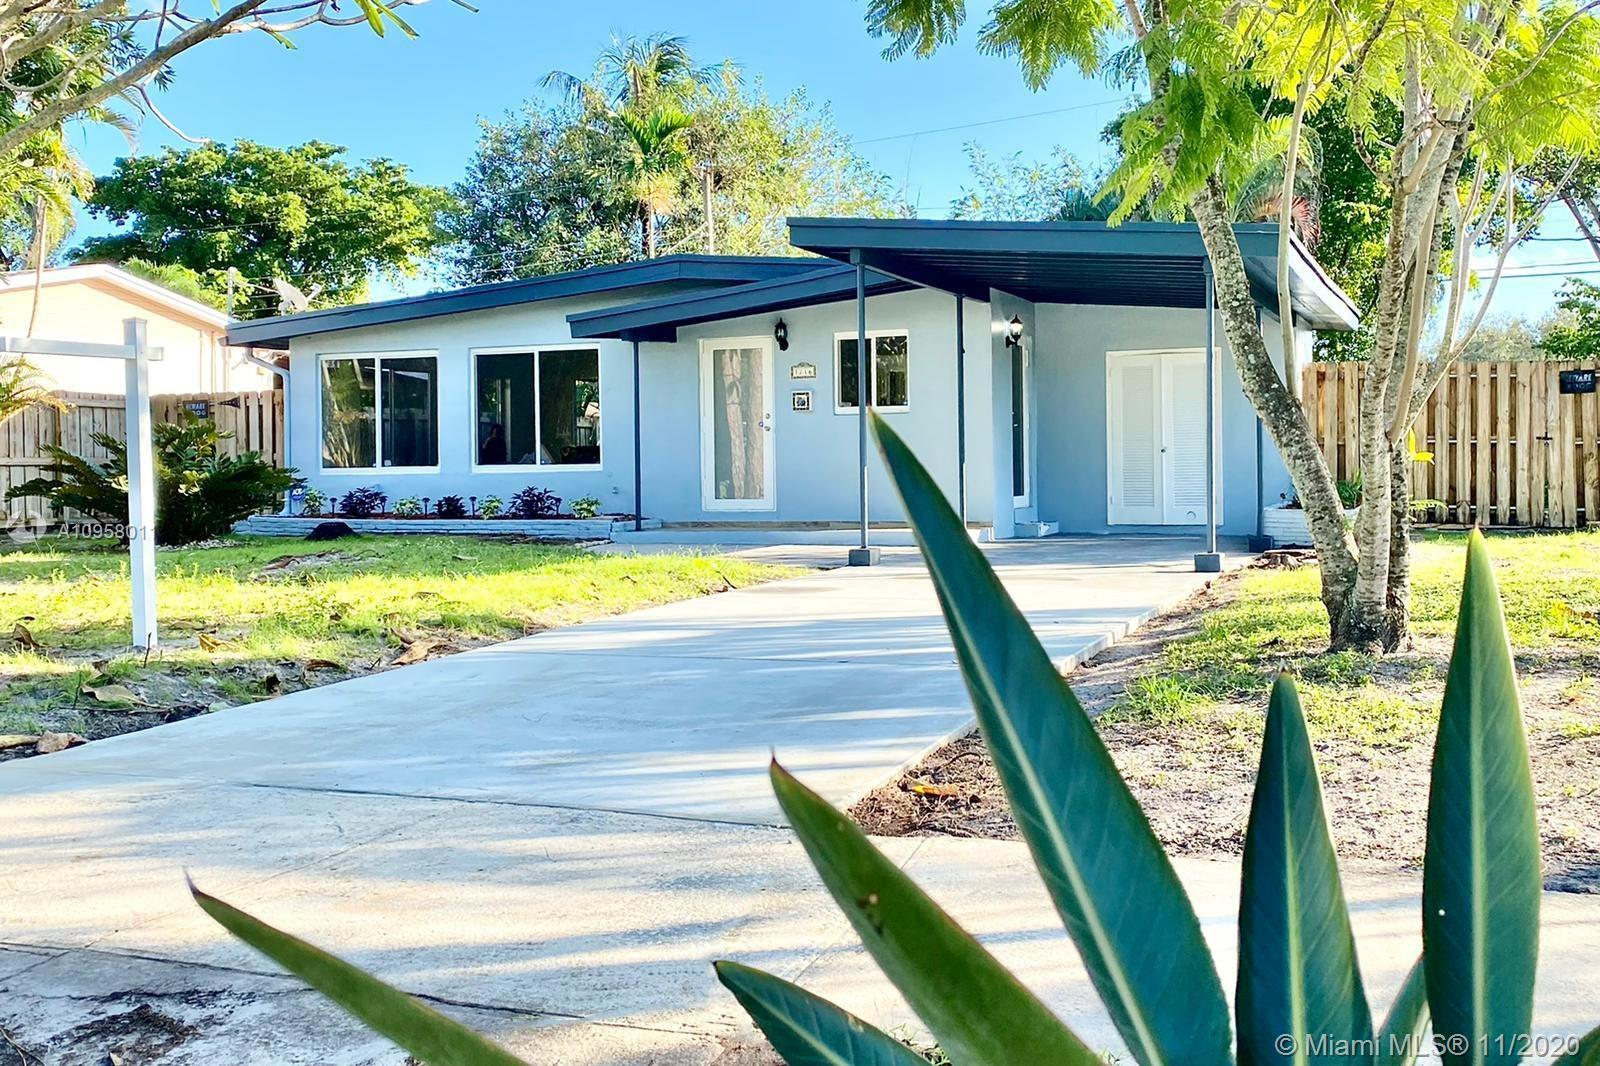 LOCATION, LOCATION! Minutes away from Downtown Fort Lauderdale, its beaches, and Airport. Cozy and